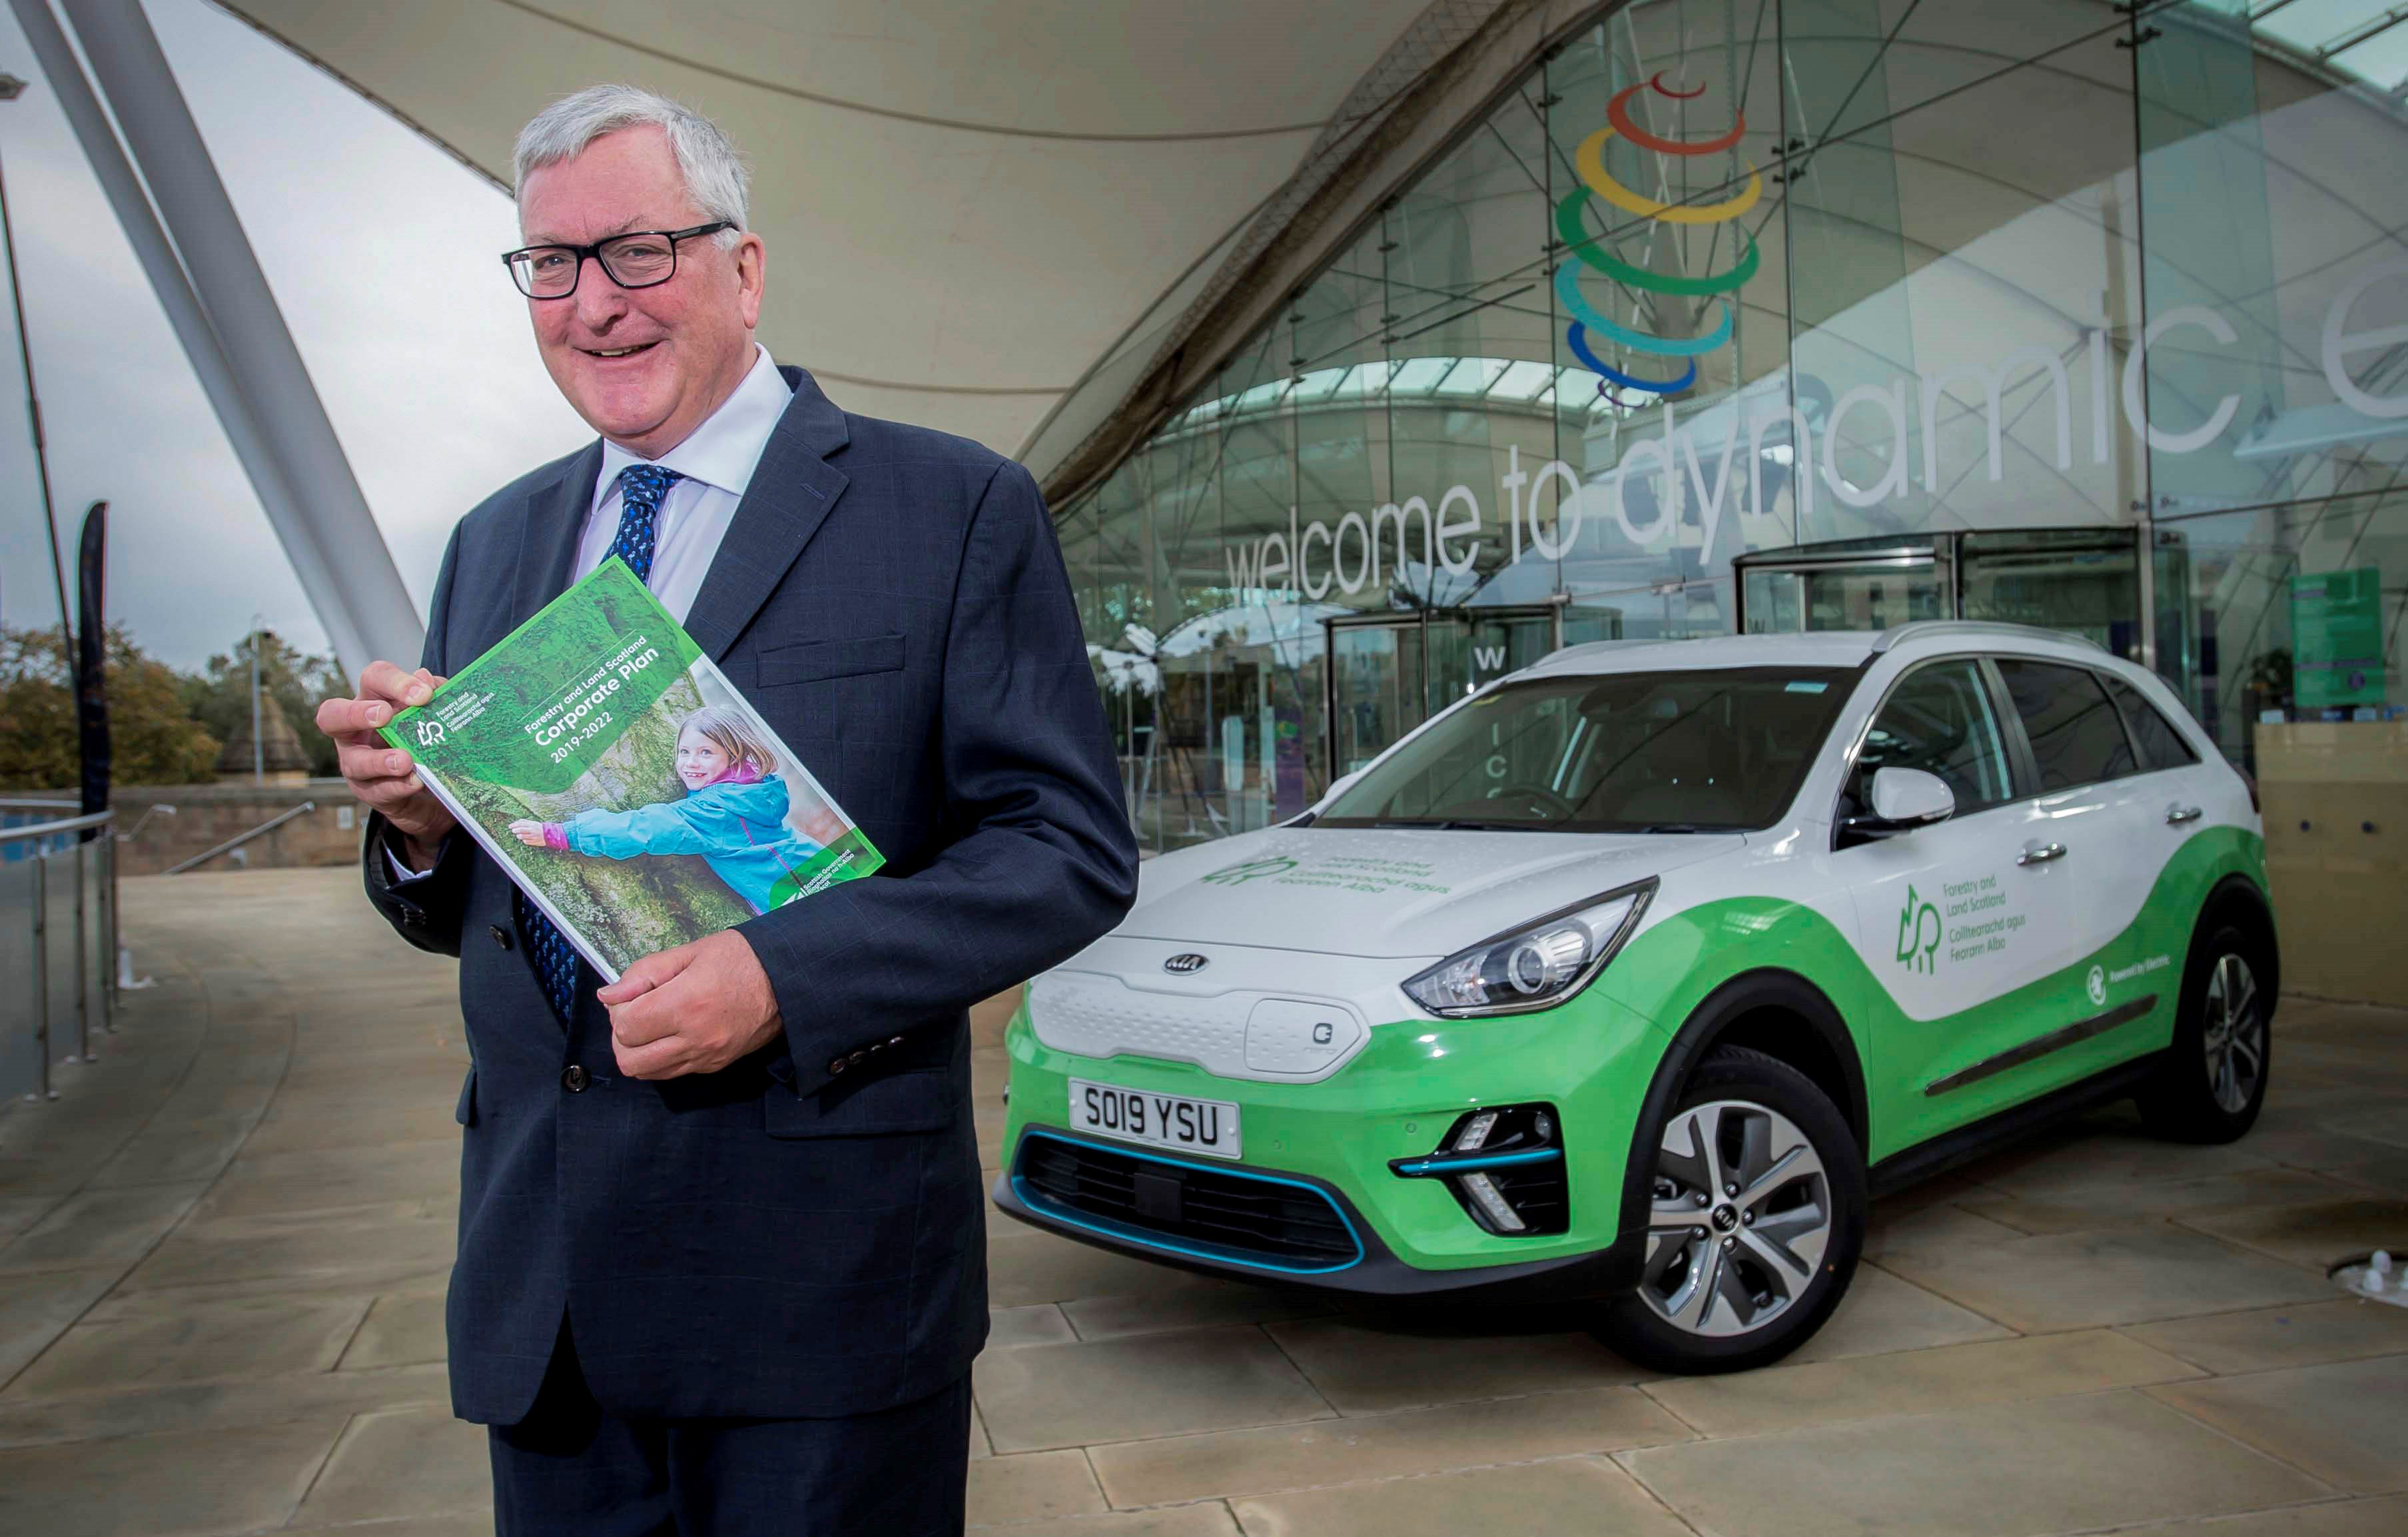 Fergus Ewing holding a copy of the Corporate Plan in front of an electric car